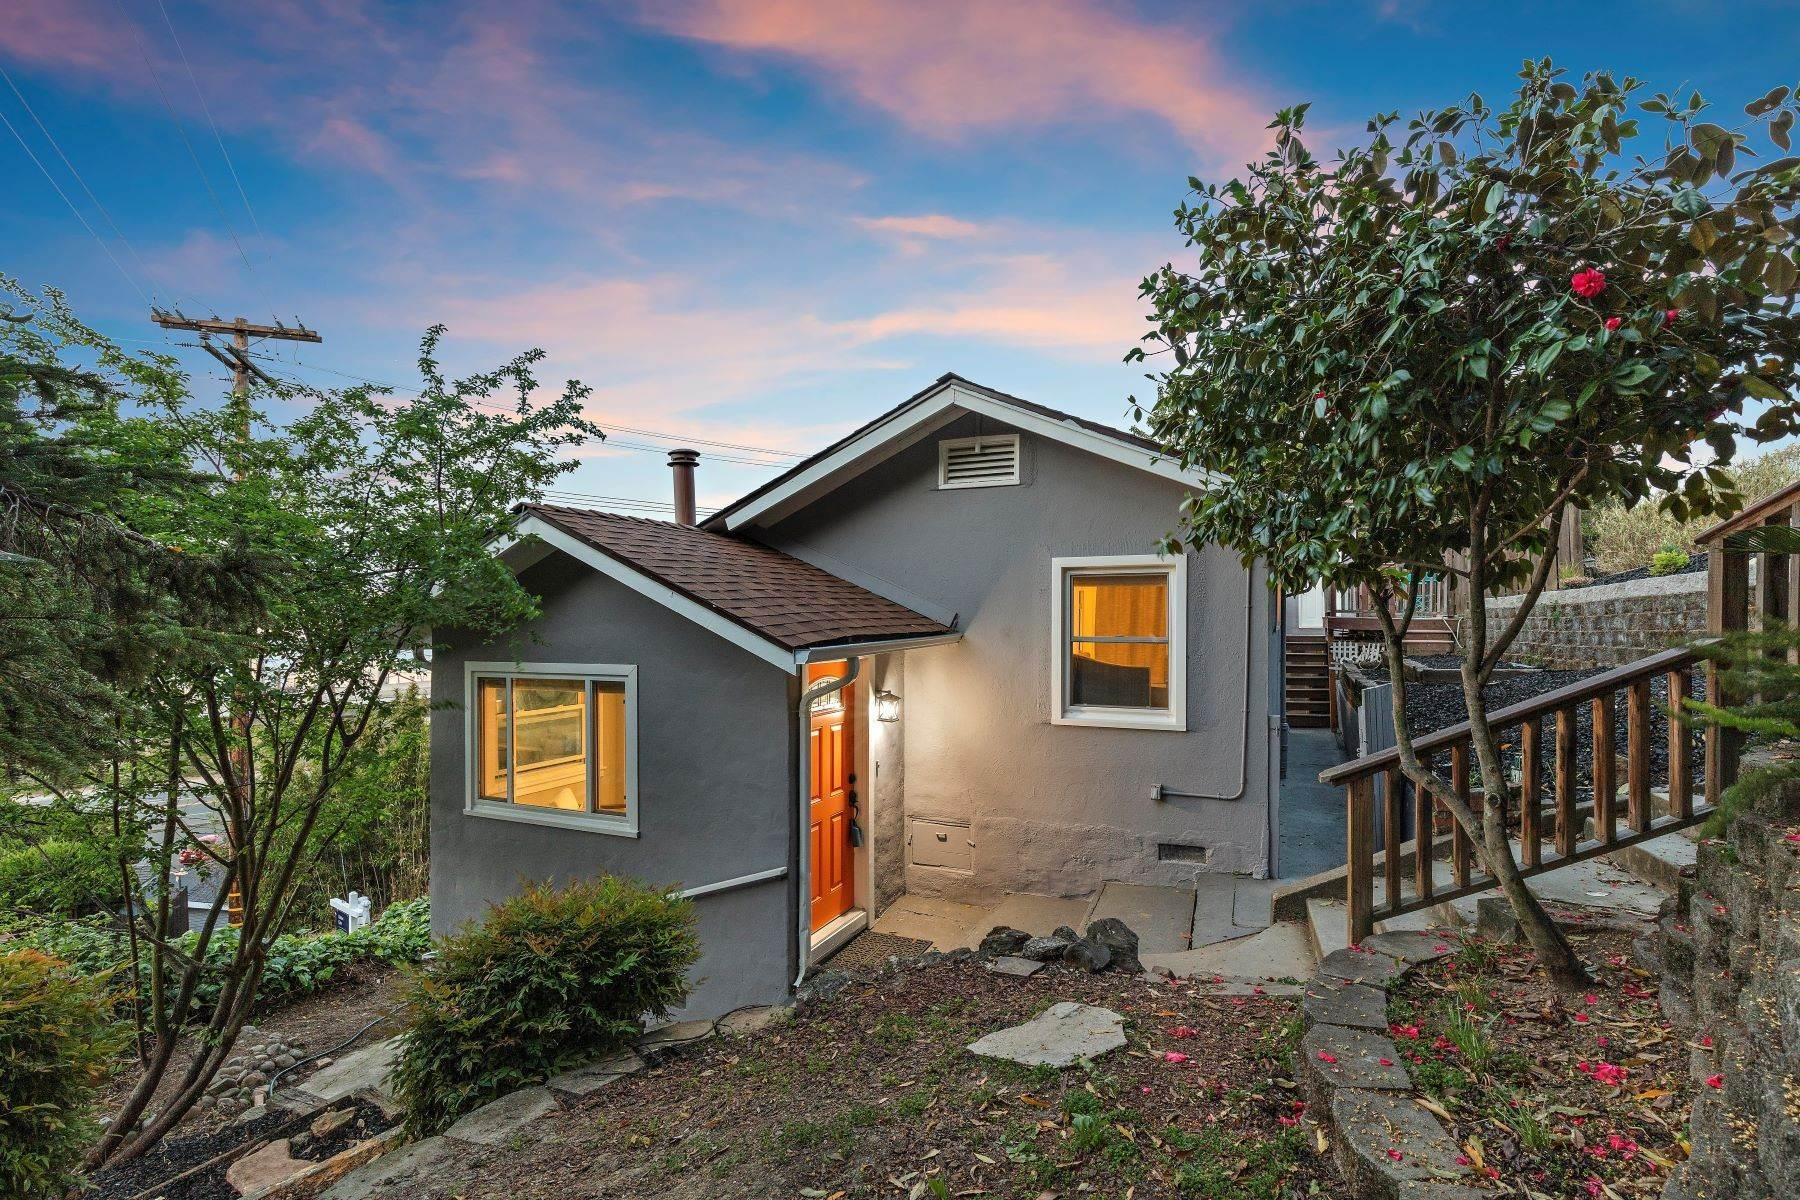 Single Family Homes for Sale at Hidden Gem in Crockett with Spectacular Views 291 Virginia Street Crockett, California 94525 United States